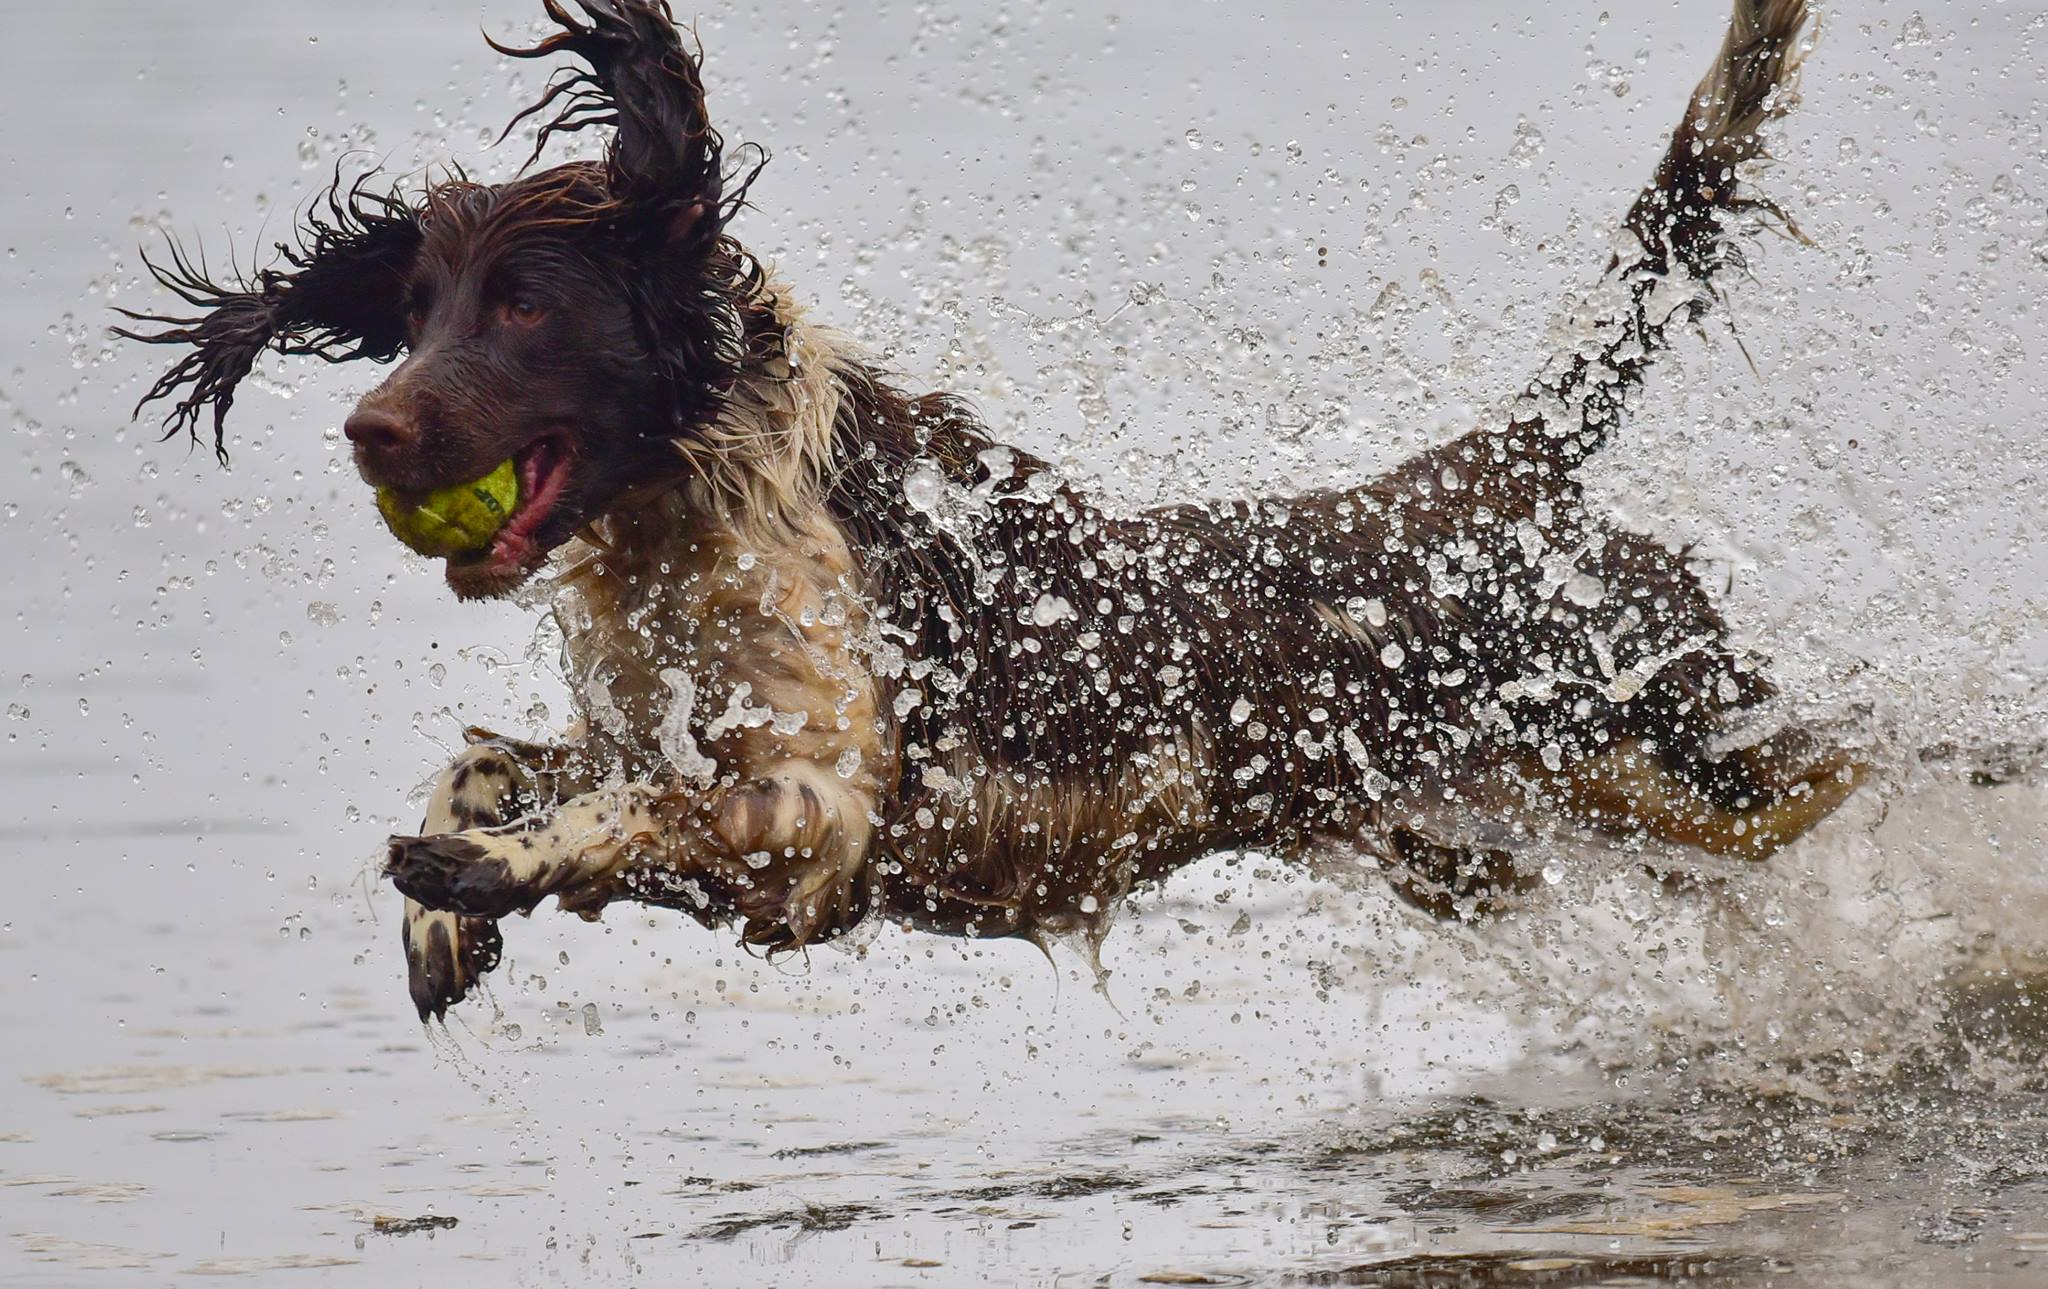 springer spaniel leaping into water